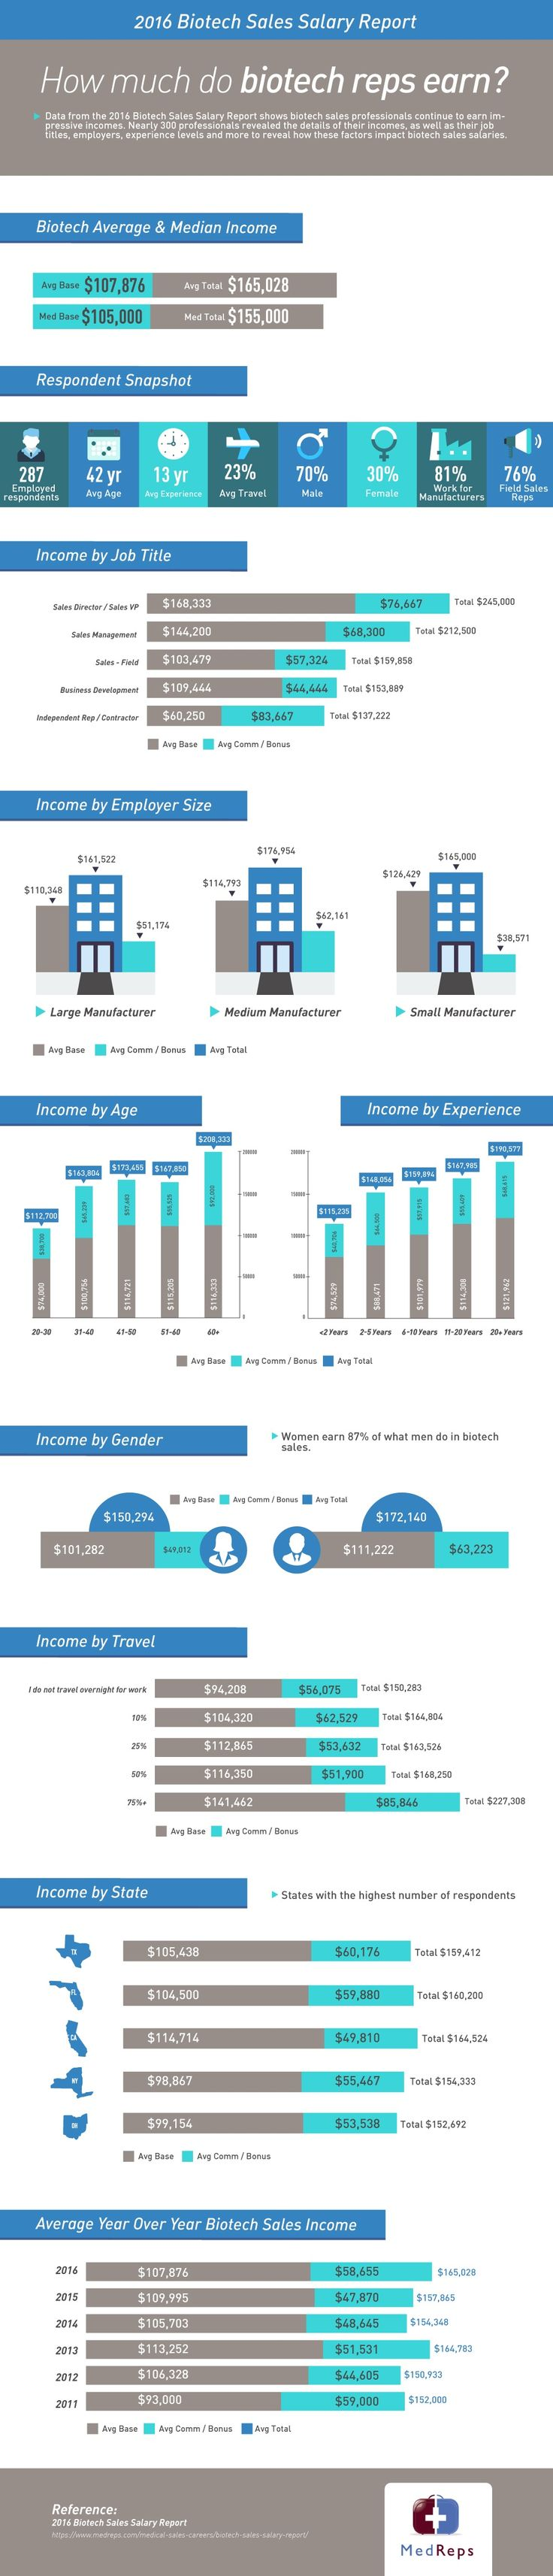 best images about medical device industry news data from the 2016 biotech s salary report shows biotech s professionals continue to earn impressive incomes